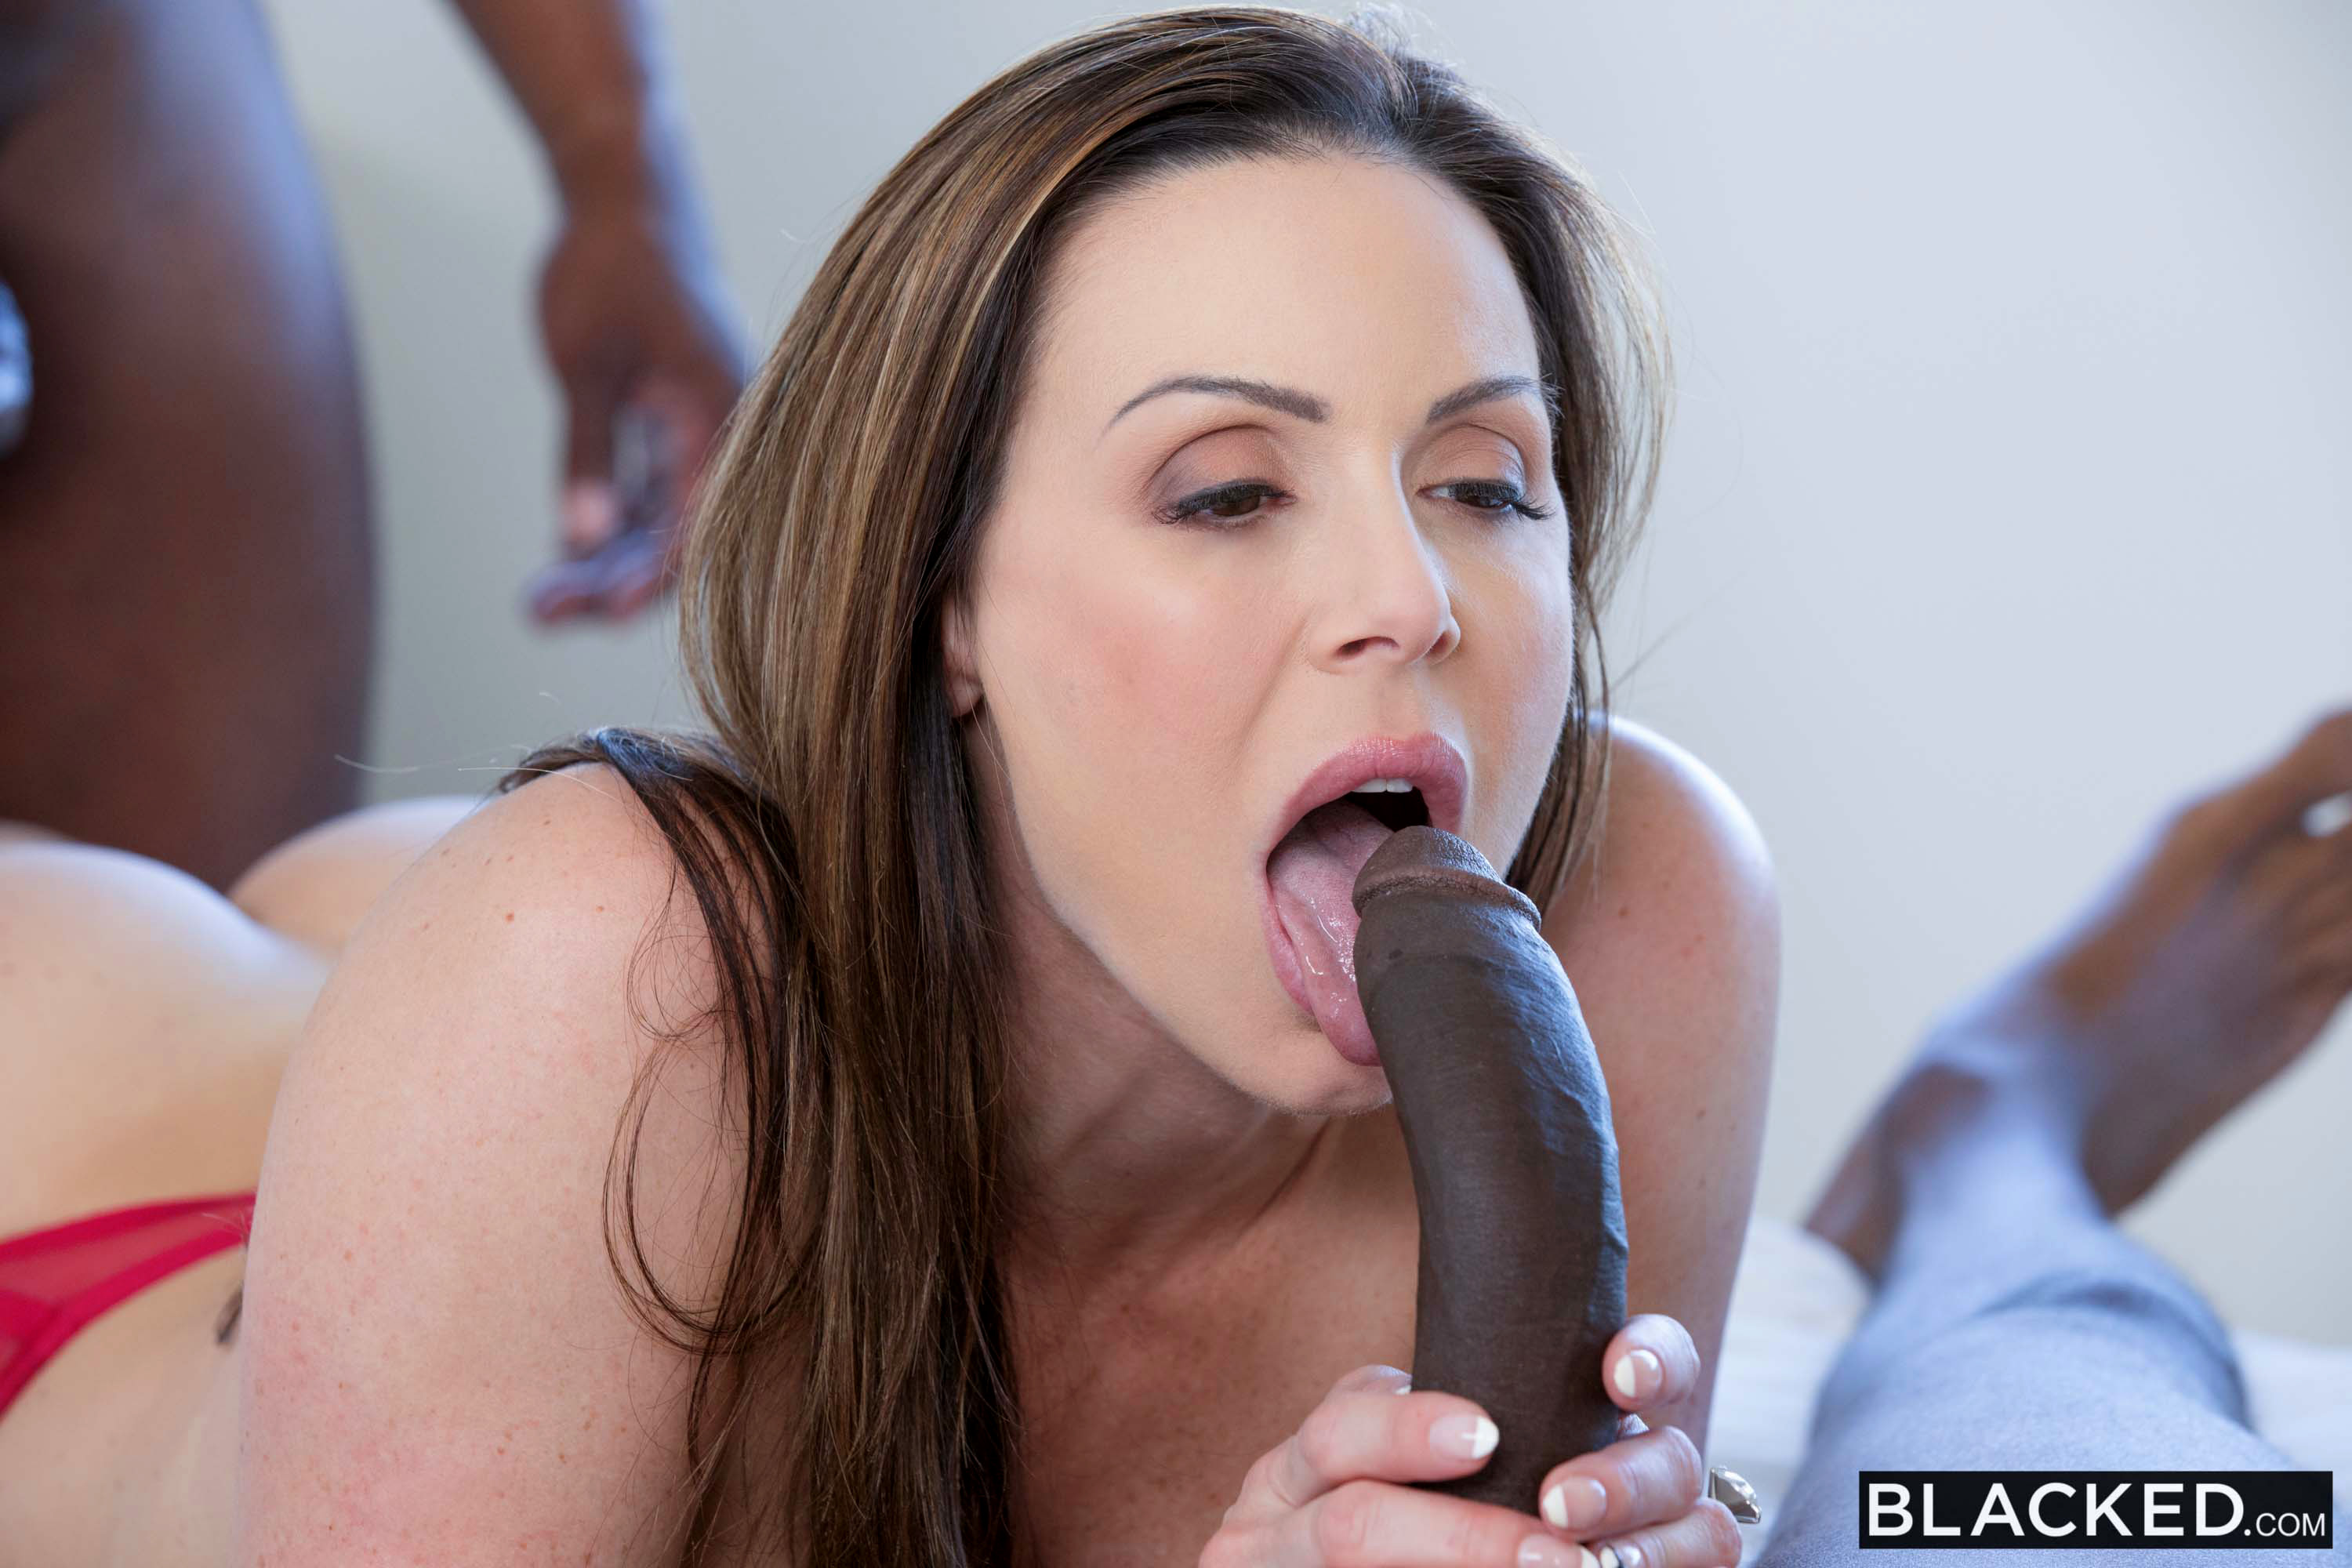 Mom mature mom tries some inter racial sex - 1 part 2